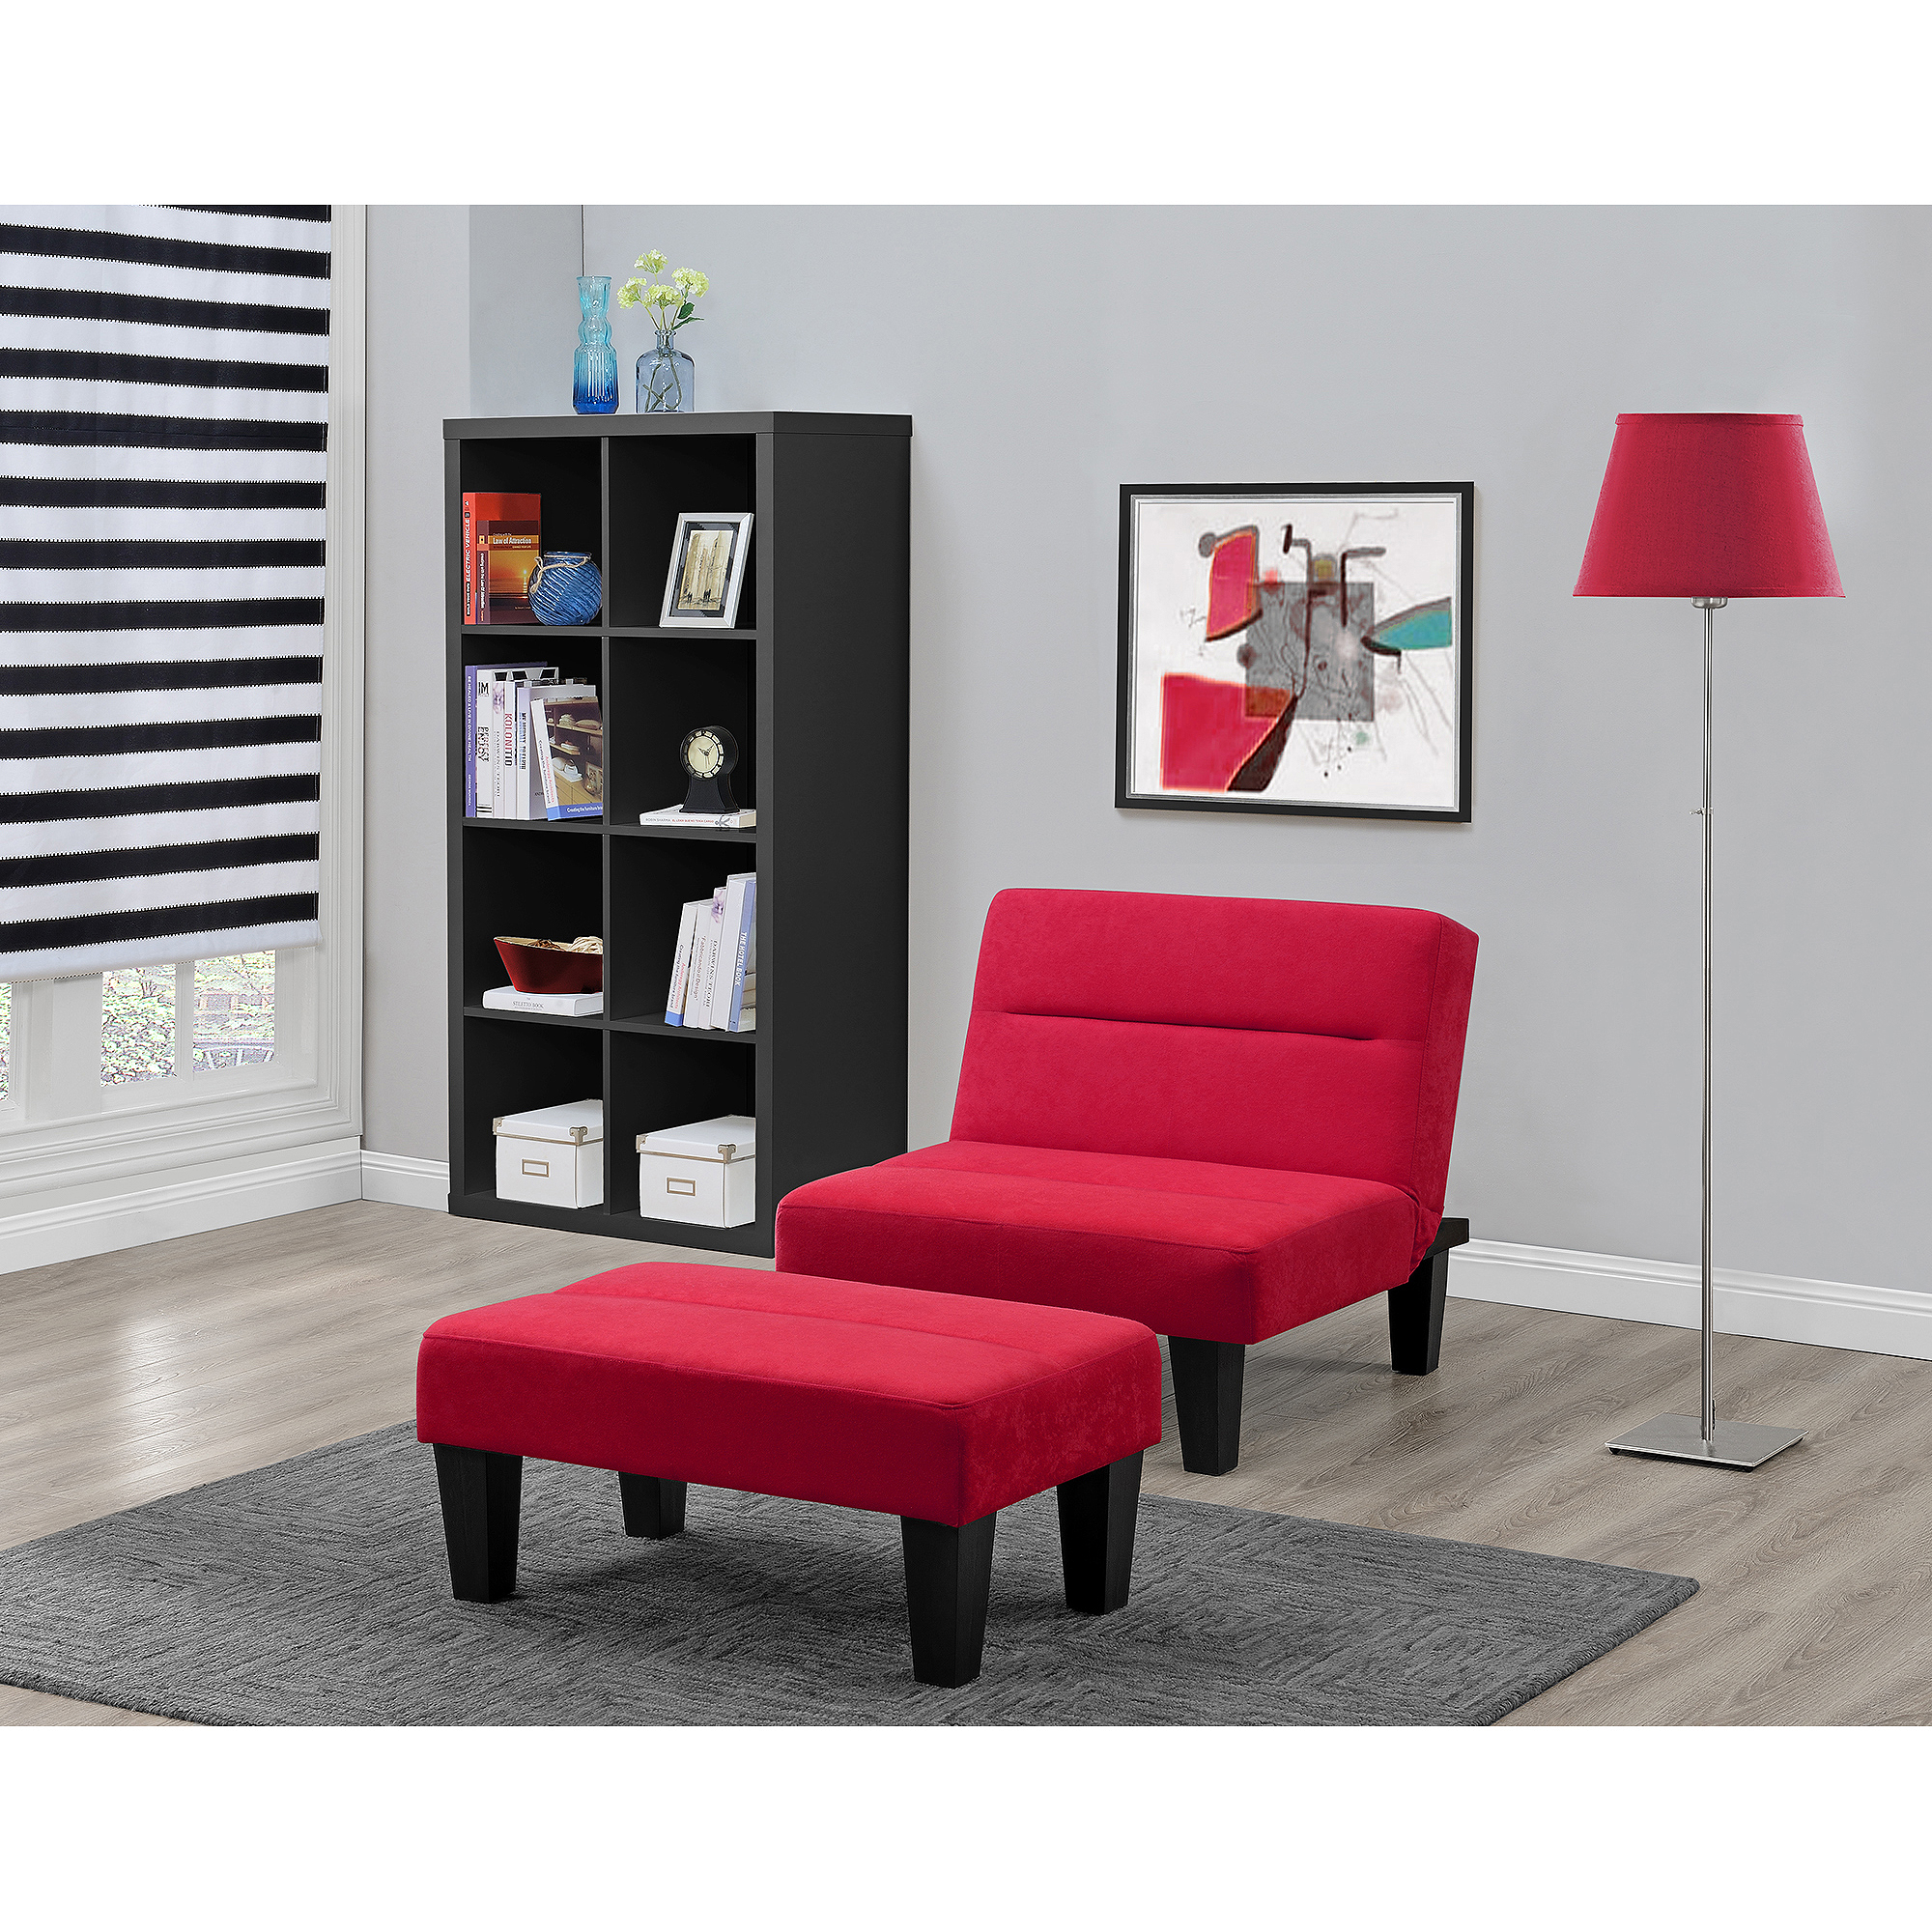 accent colors with chair ottoman com walmart microfiber kebo futon multiple ip futons dhp cover